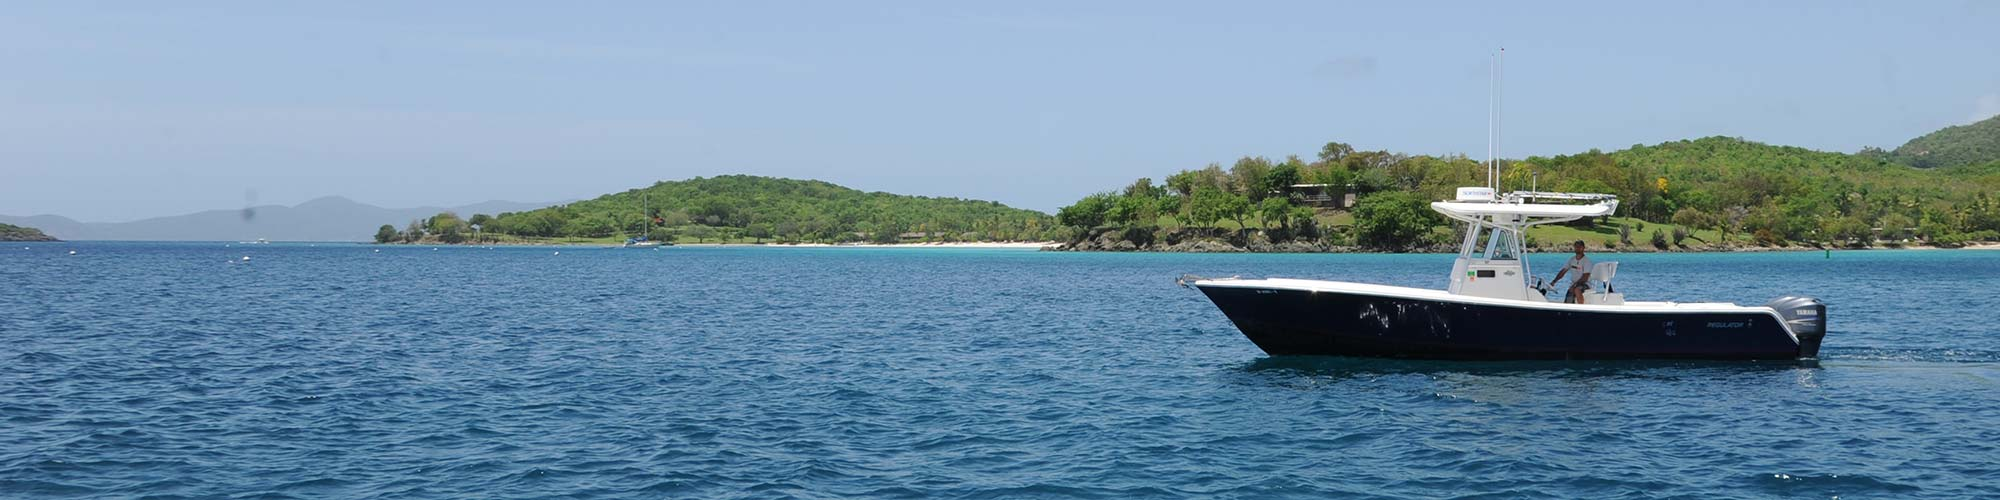 powerboat-charter-stjohn-boat-rental1